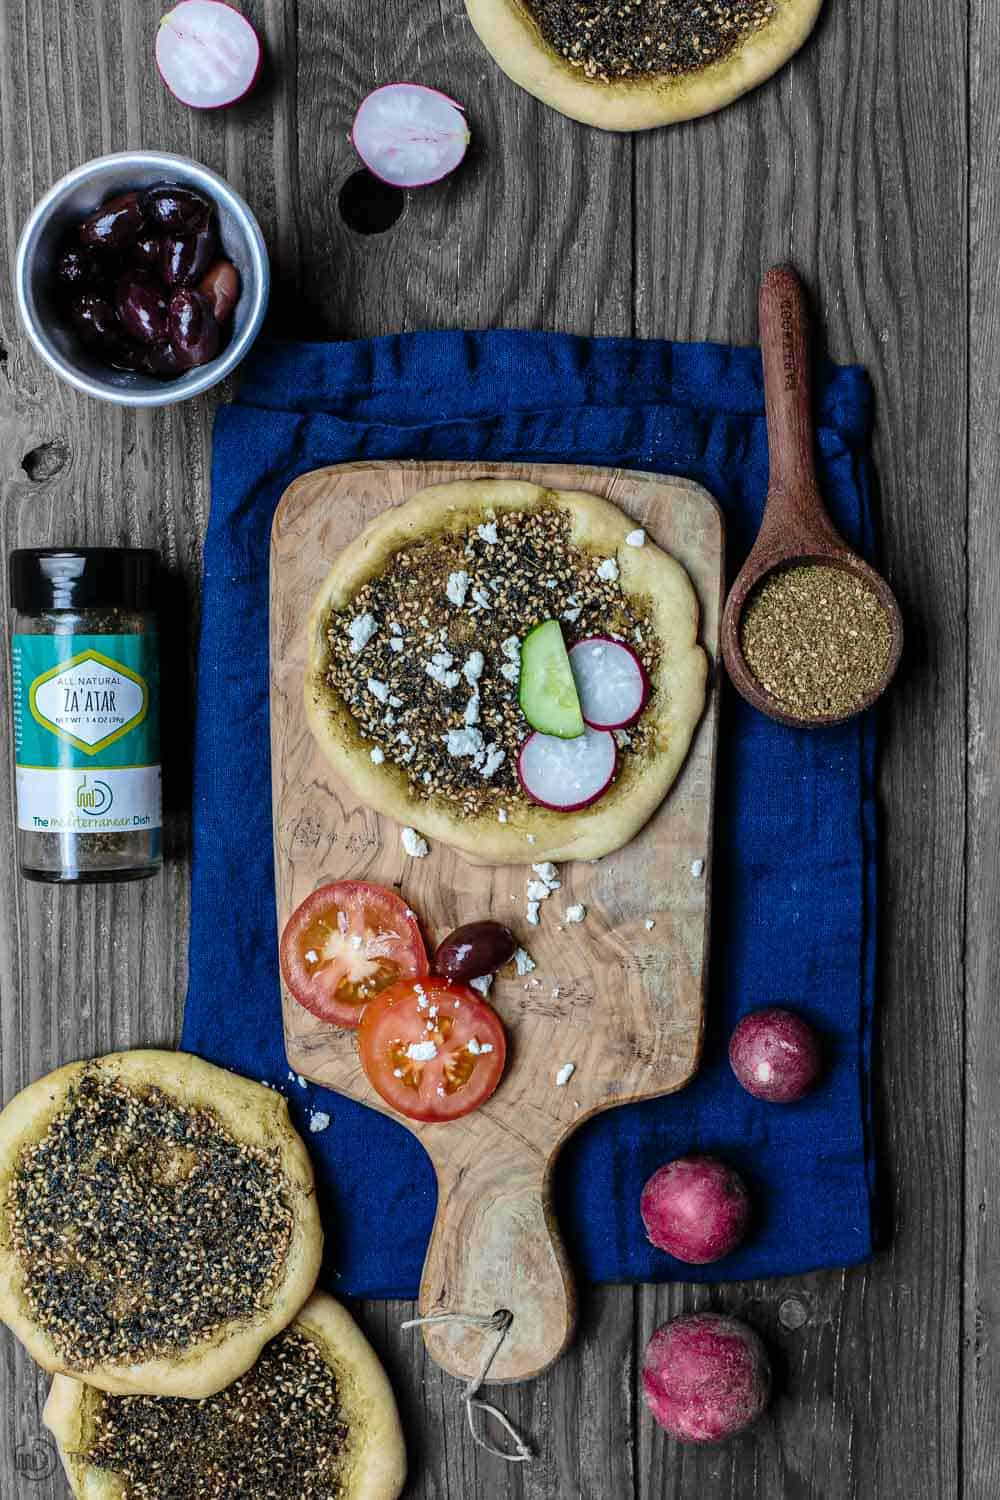 Za'atar Manaqish (Manakish) Recipe | The Mediterranean Dish. Middle Eastern homemade flatbread with olive oil and Za'atar spice. Easy vegan recipe that's perfect for snack, appetizer, or even brunch. See the full recipe on TheMediterraneanDish.com #mediterraneandiet #mediterraneanrecipe #mediterraneandietrecipe #manakish #flatbread